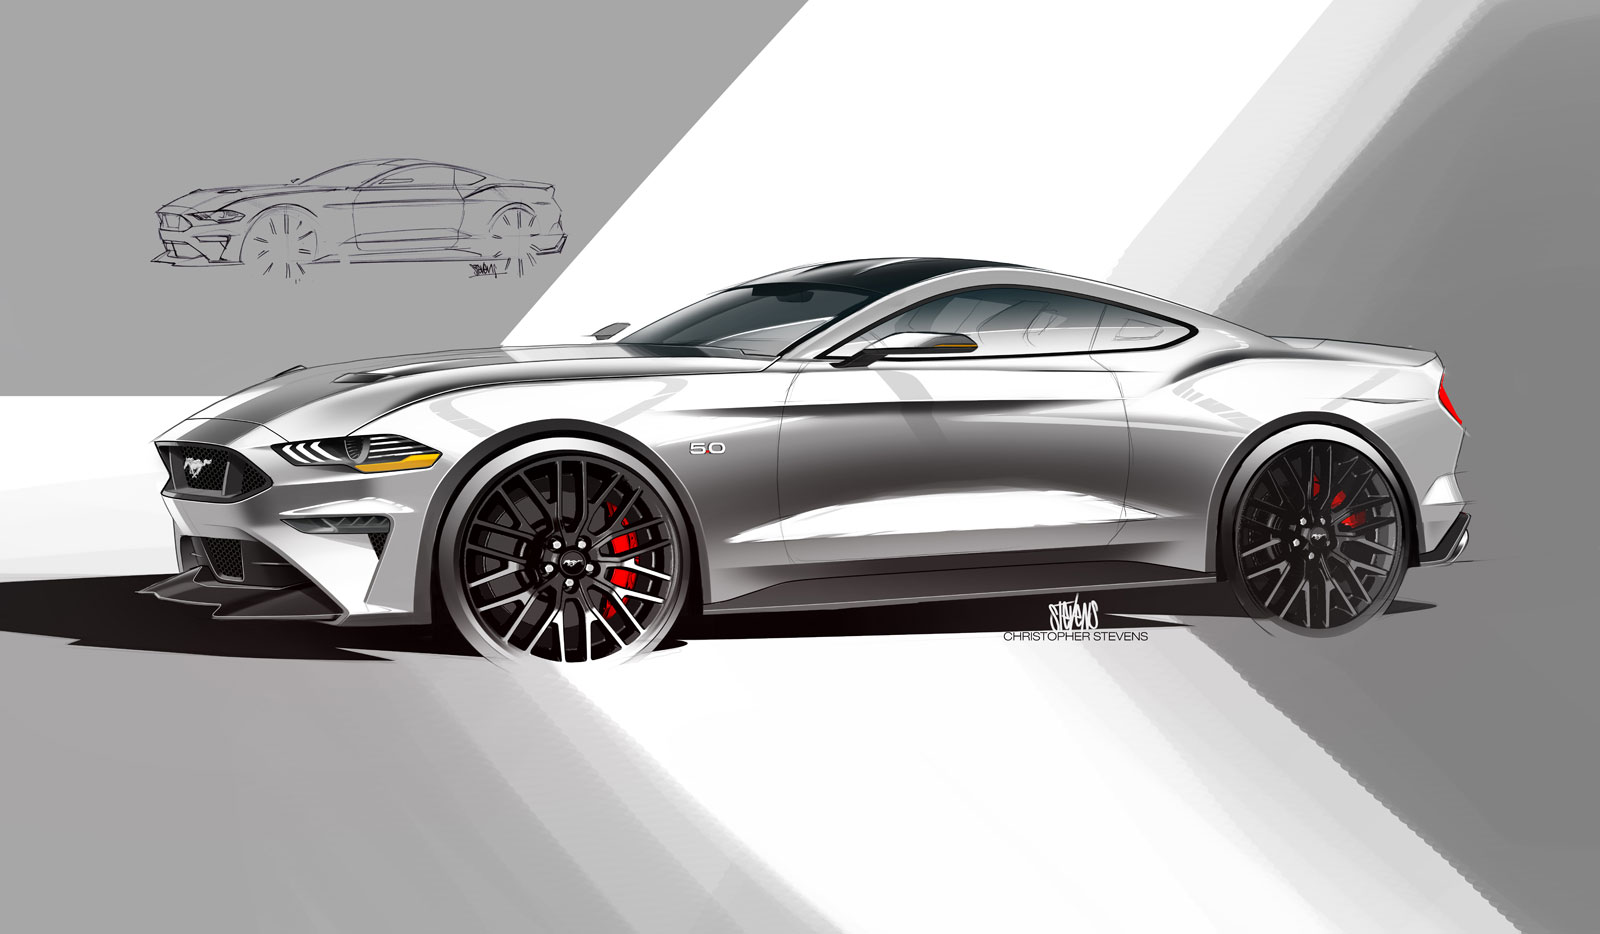 mustang ford s650 gen sketch 2021 seventh put pasture production generation gt cars future detailed official specs render gt500 current